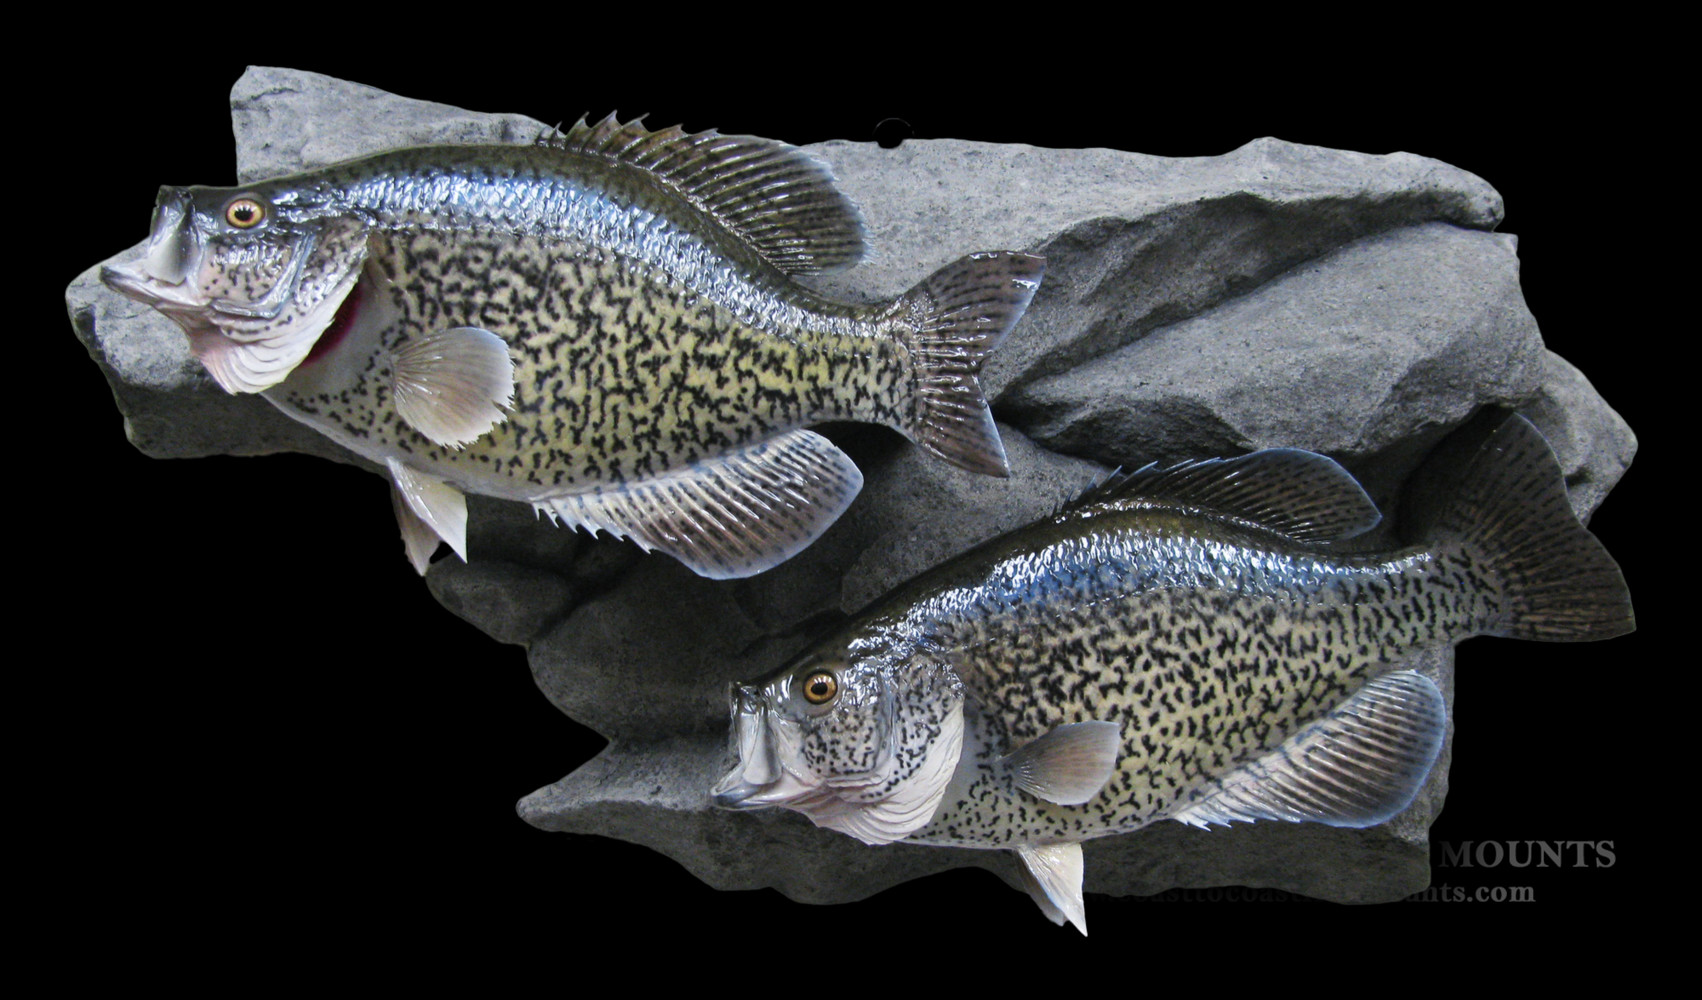 Calico bass crappie fish mount and fish replicas for Replica fish mounts